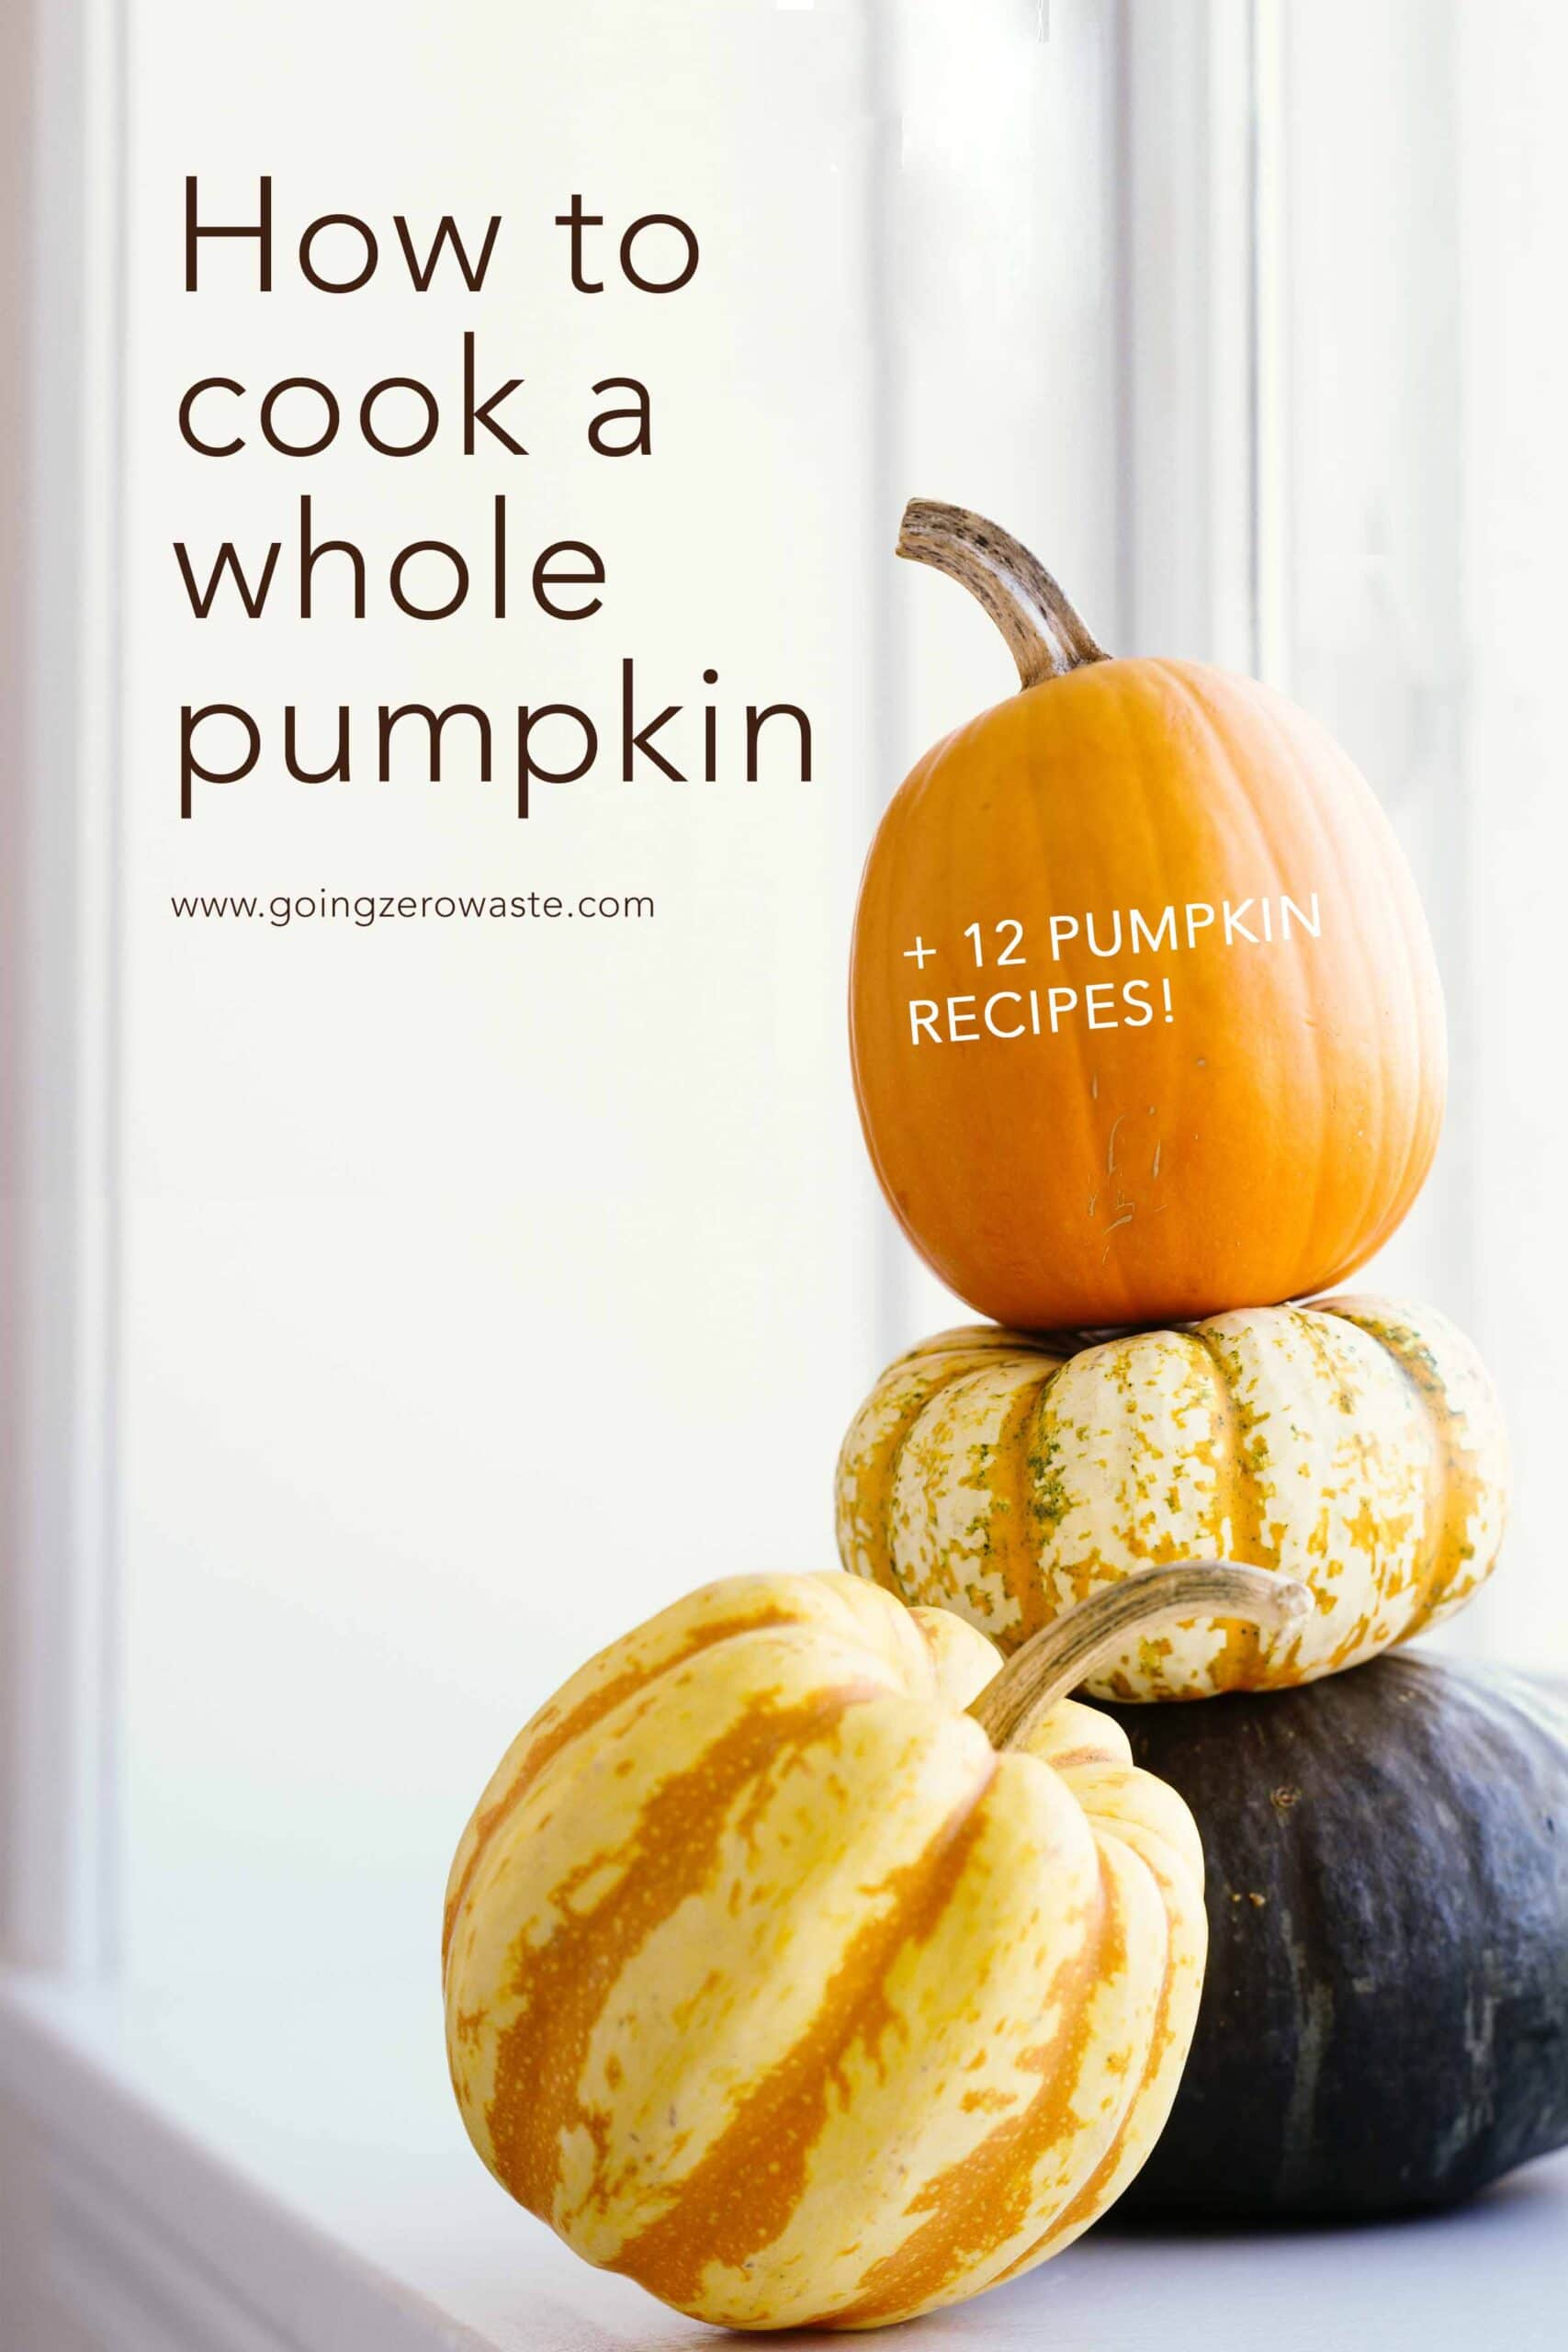 12 Recipes for cooking a whole pumpkin | How to cook a whole pumpkin